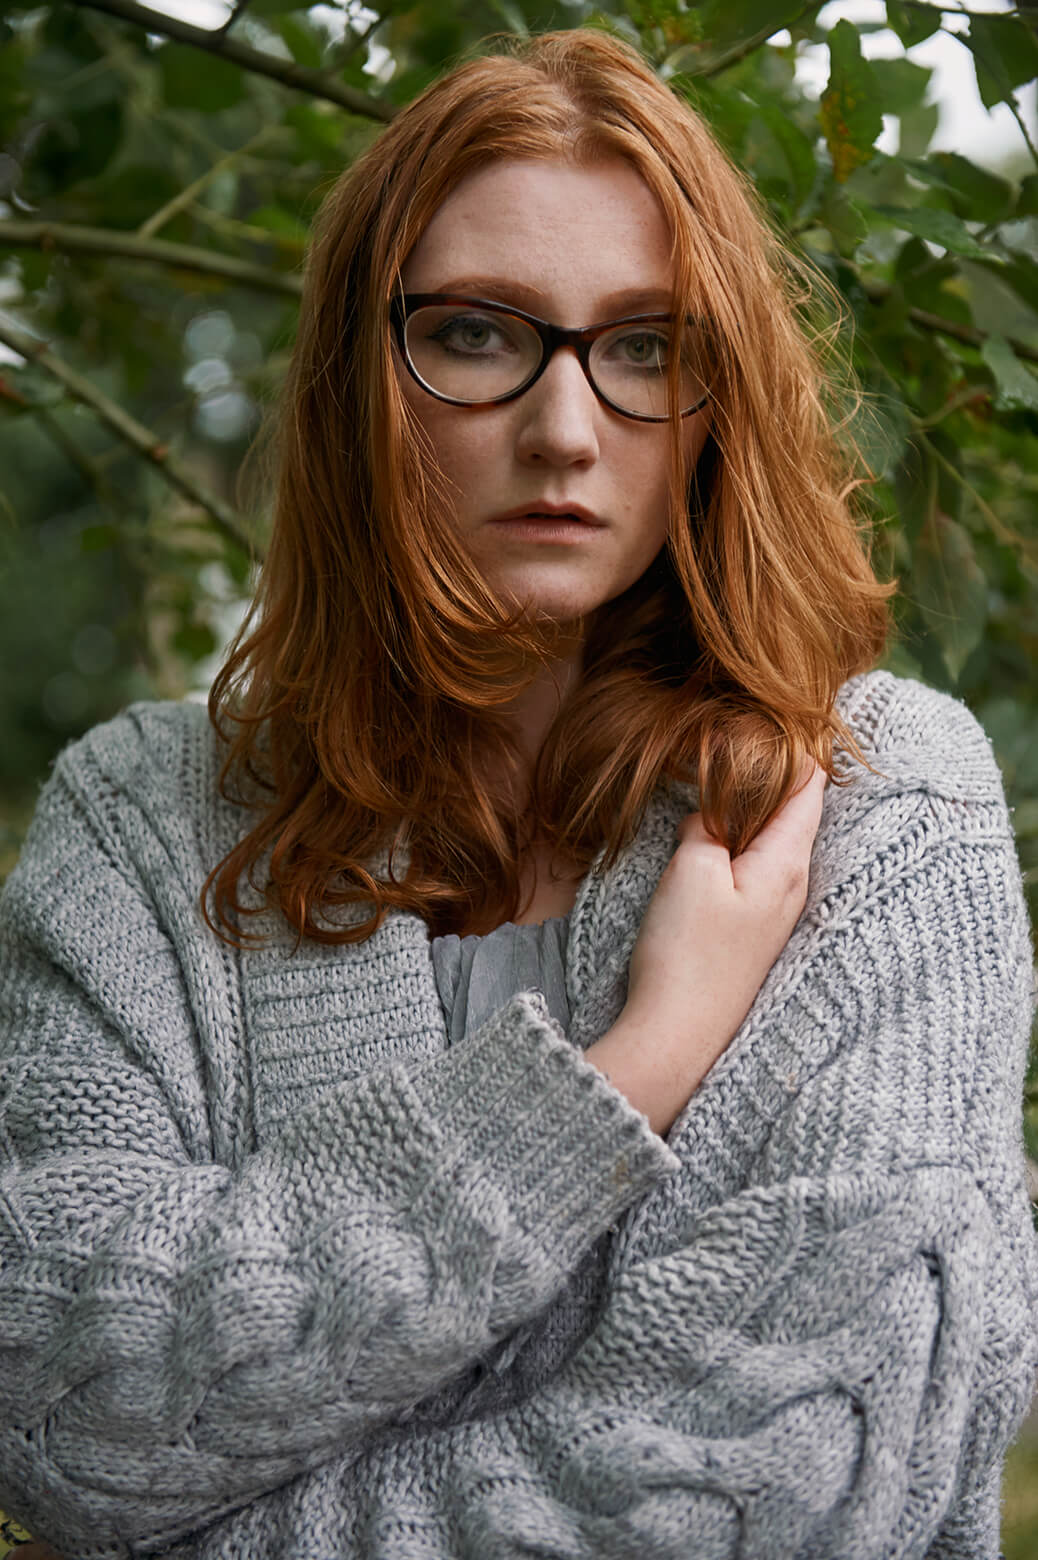 ursula schmitz, portrait, fotografie, destination, england, cumbria, ullswater, lae district, beauty, photography, red head, freckles, mom, mother